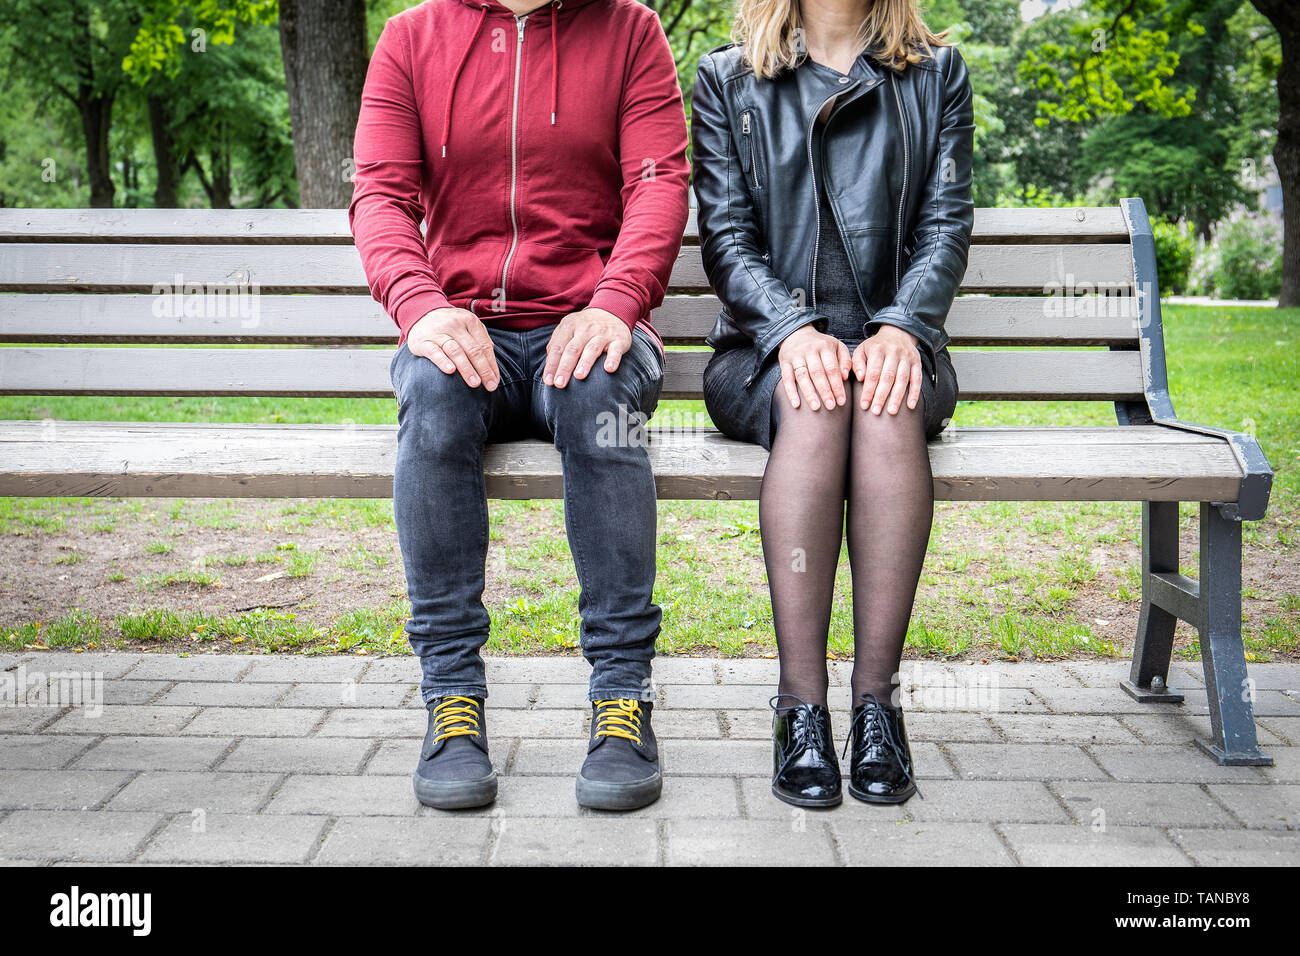 Relationship and body language concept - Stock Image